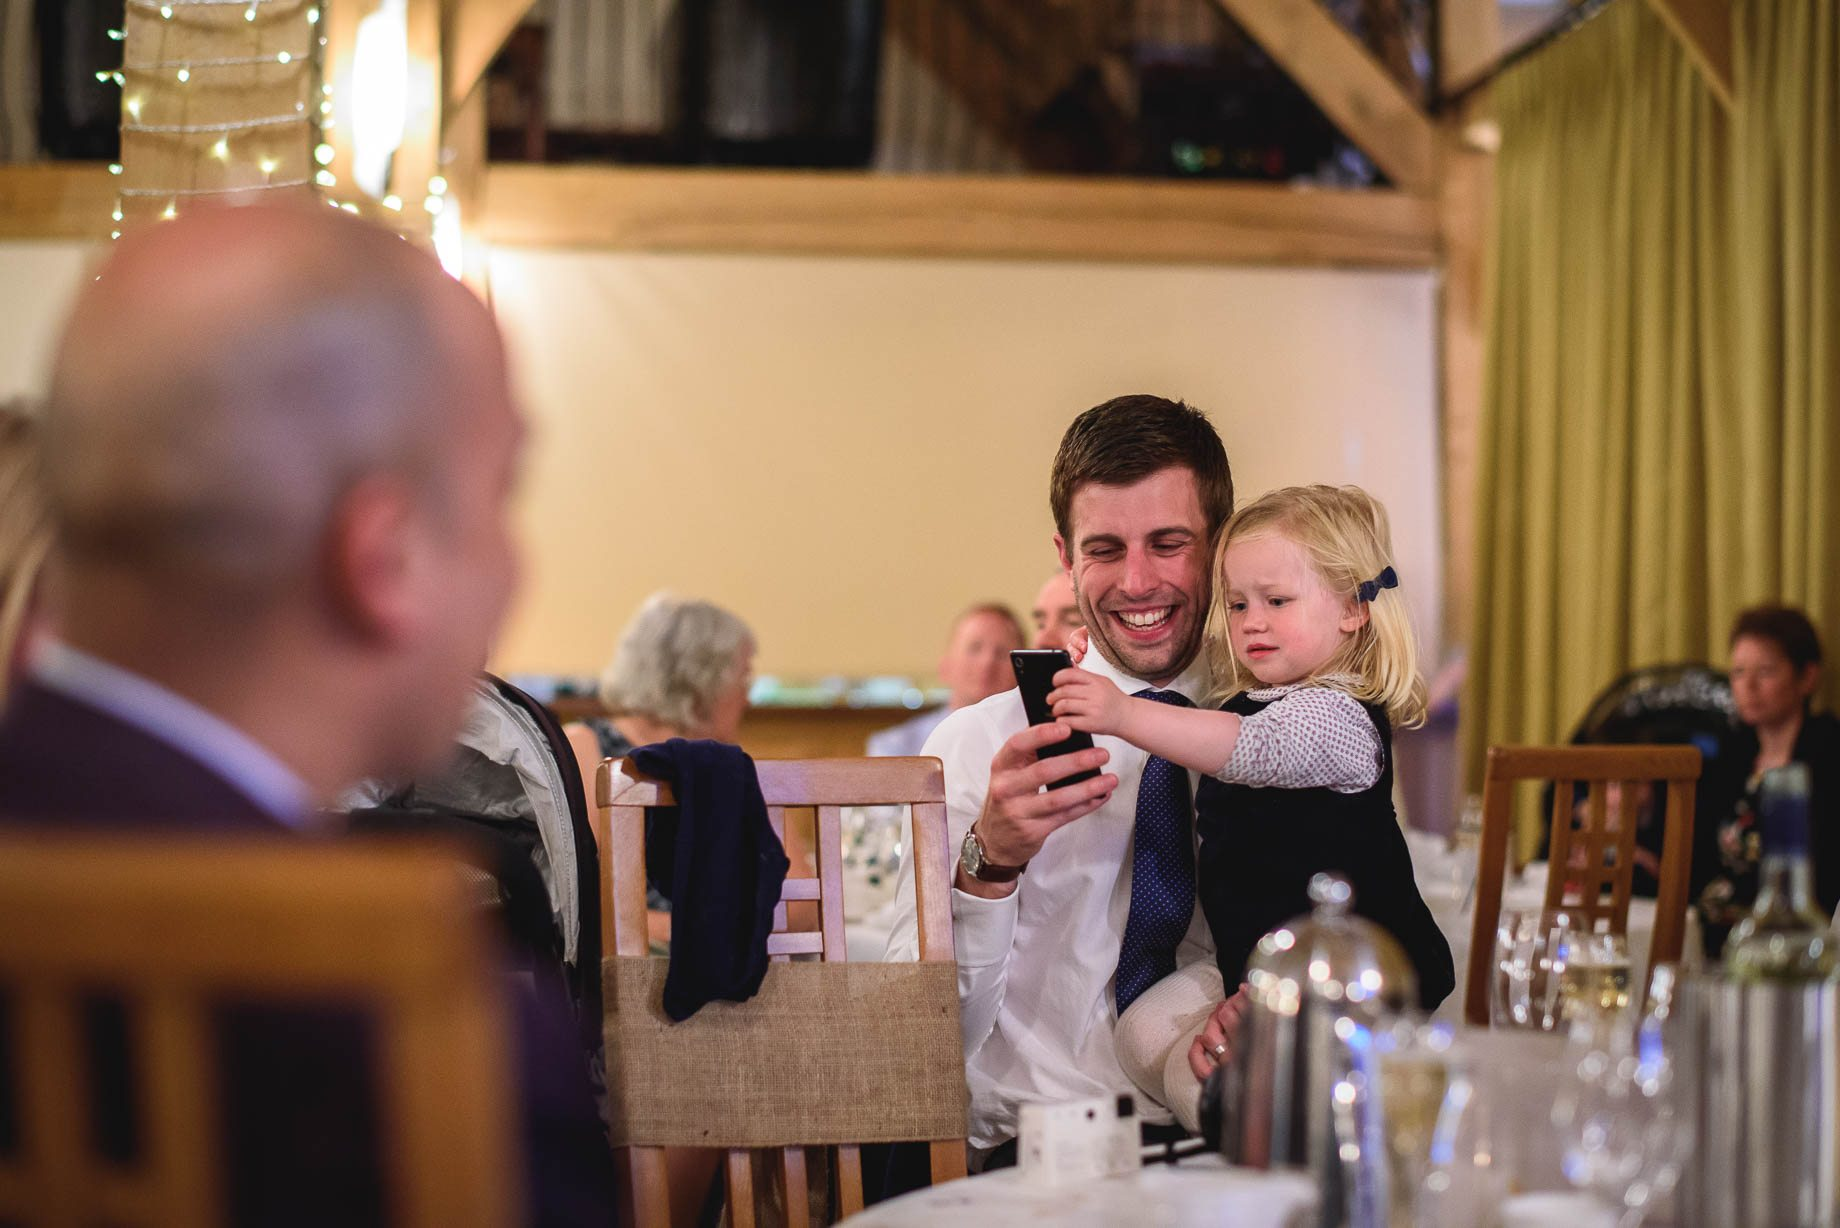 Rivervale Barn wedding photography by Guy Collier - Claire and Simon (116 of 133)